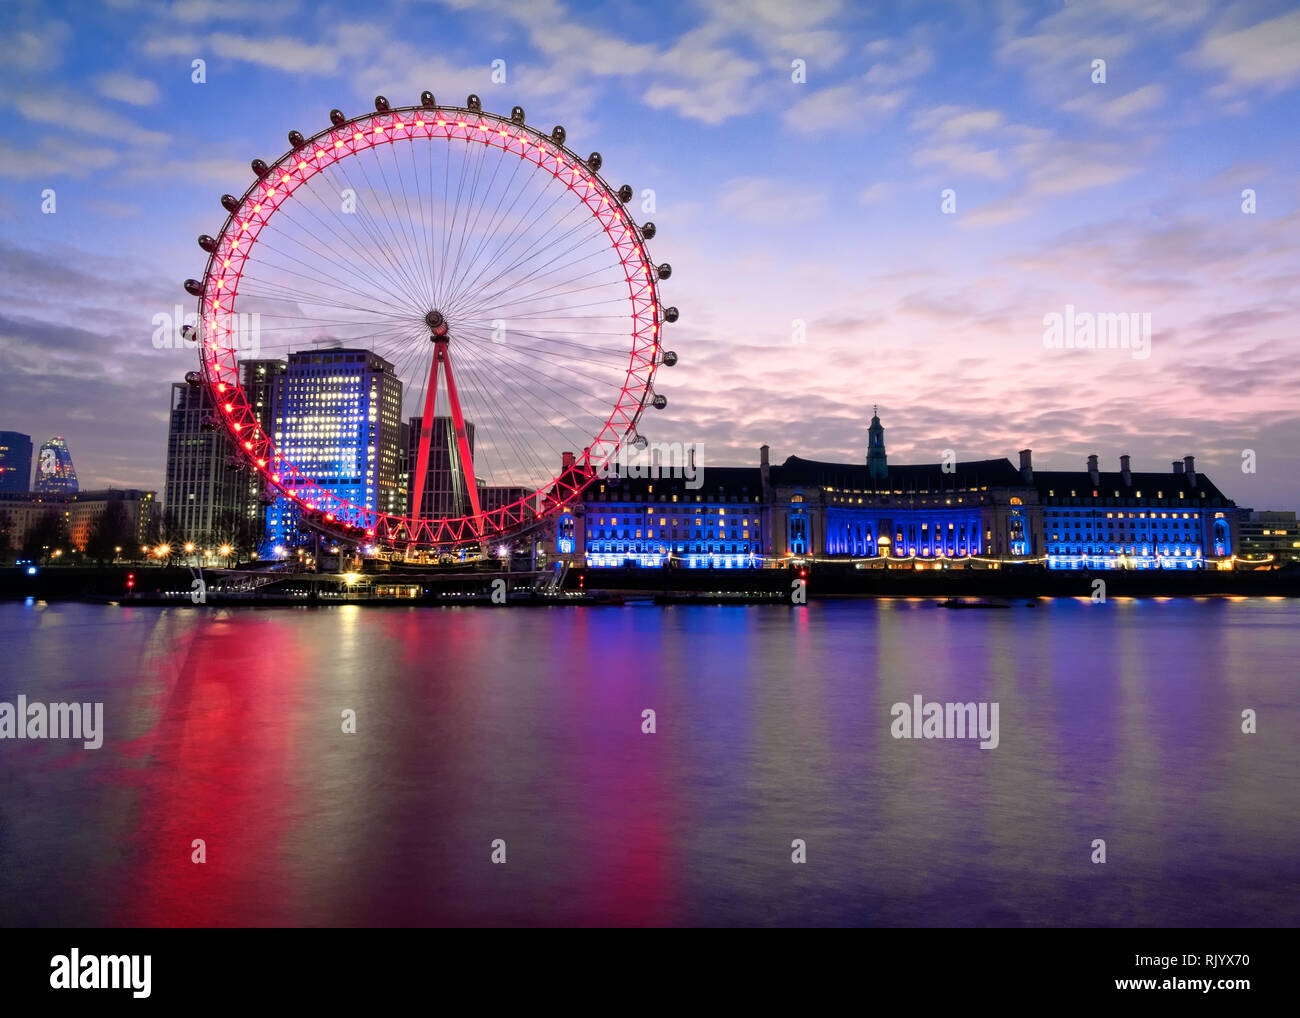 A twenty-second exposure, of the English London Eye and